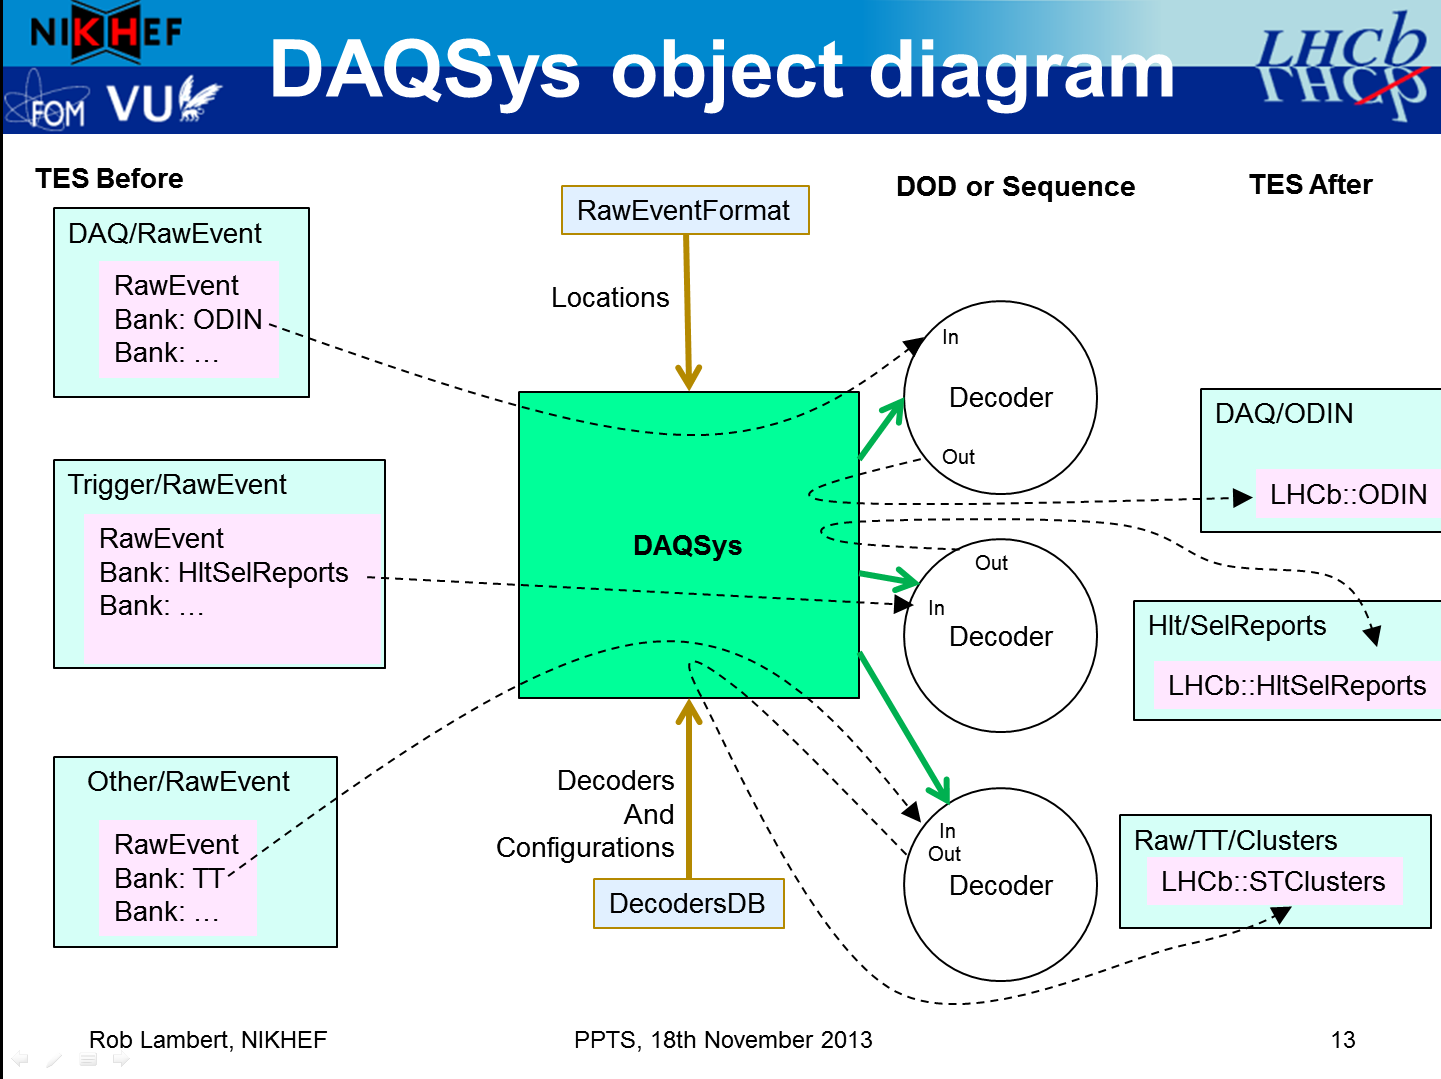 object diagram for DAQSys